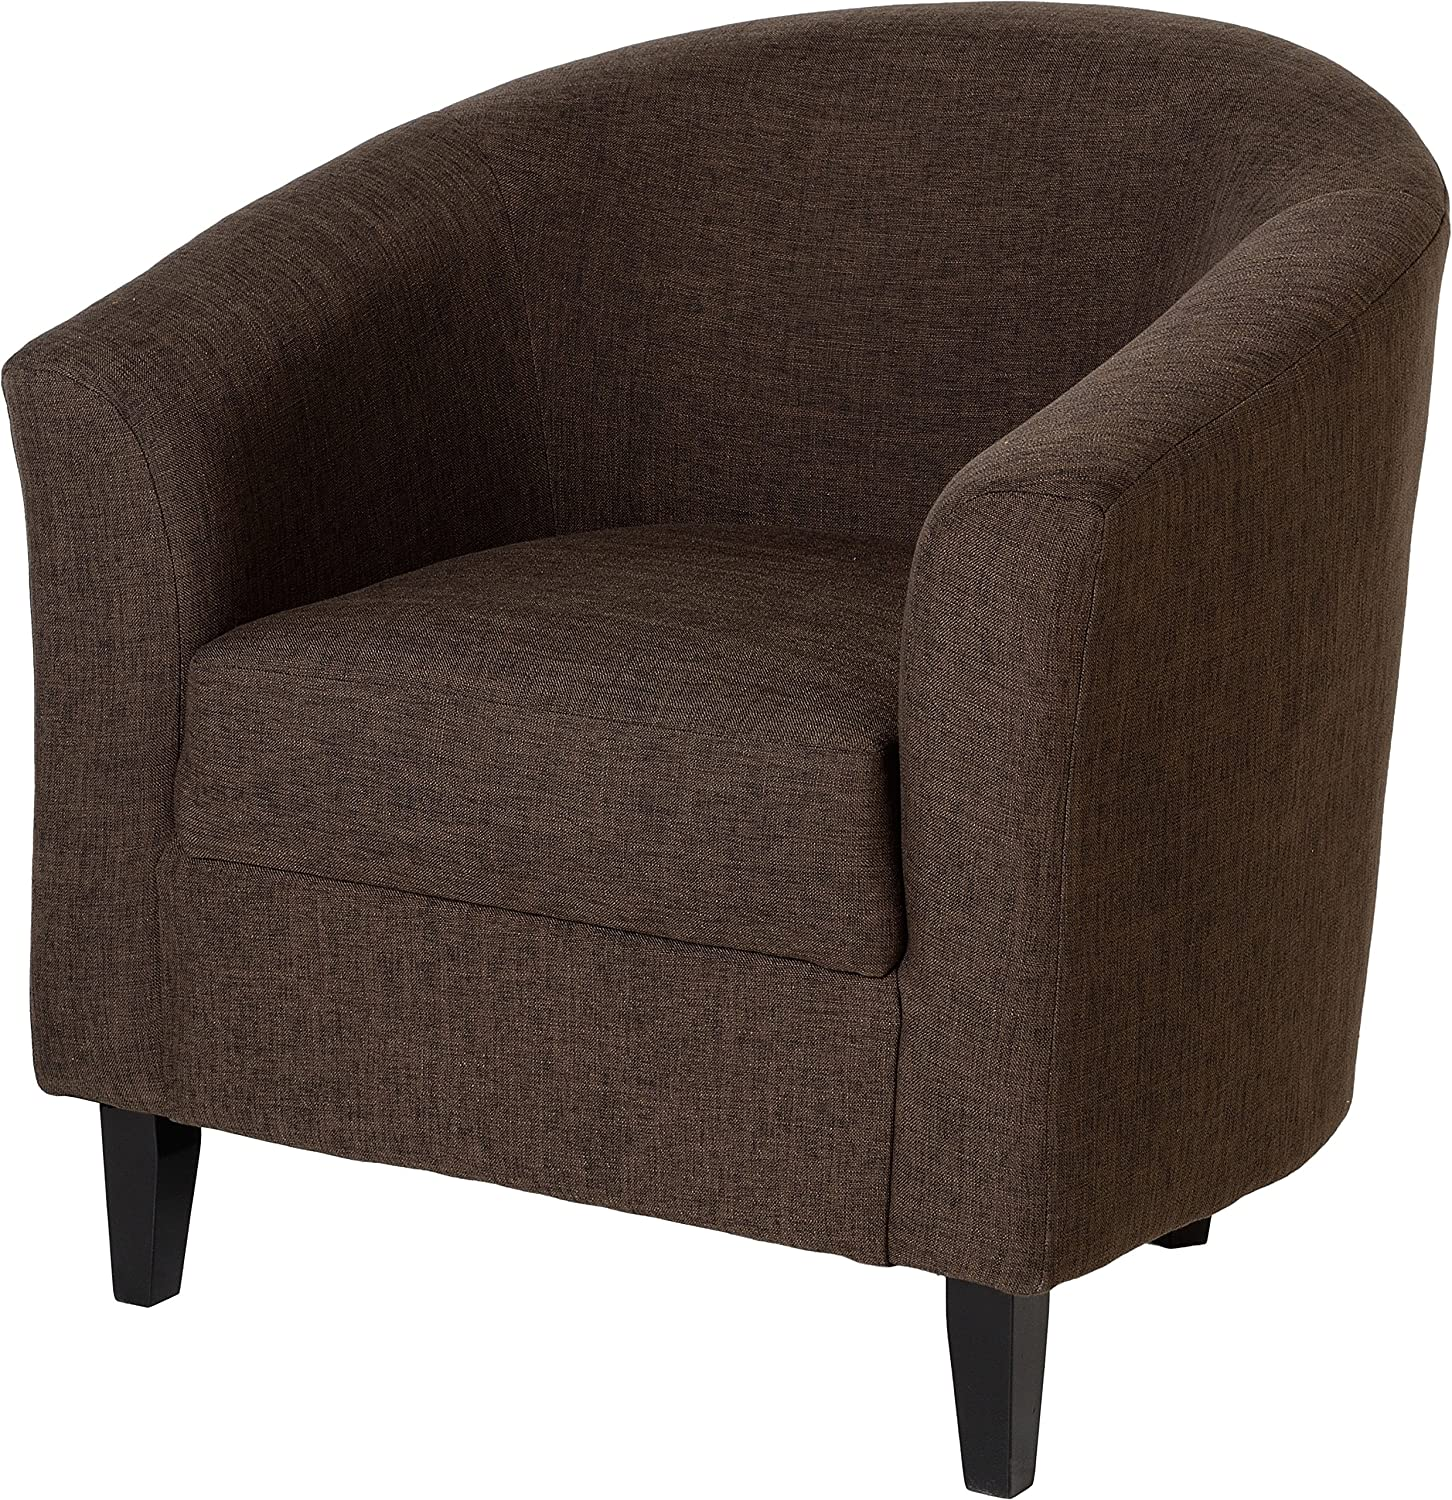 Tempo Tub Chair Dark Brown Fabric Upholstery Amazon